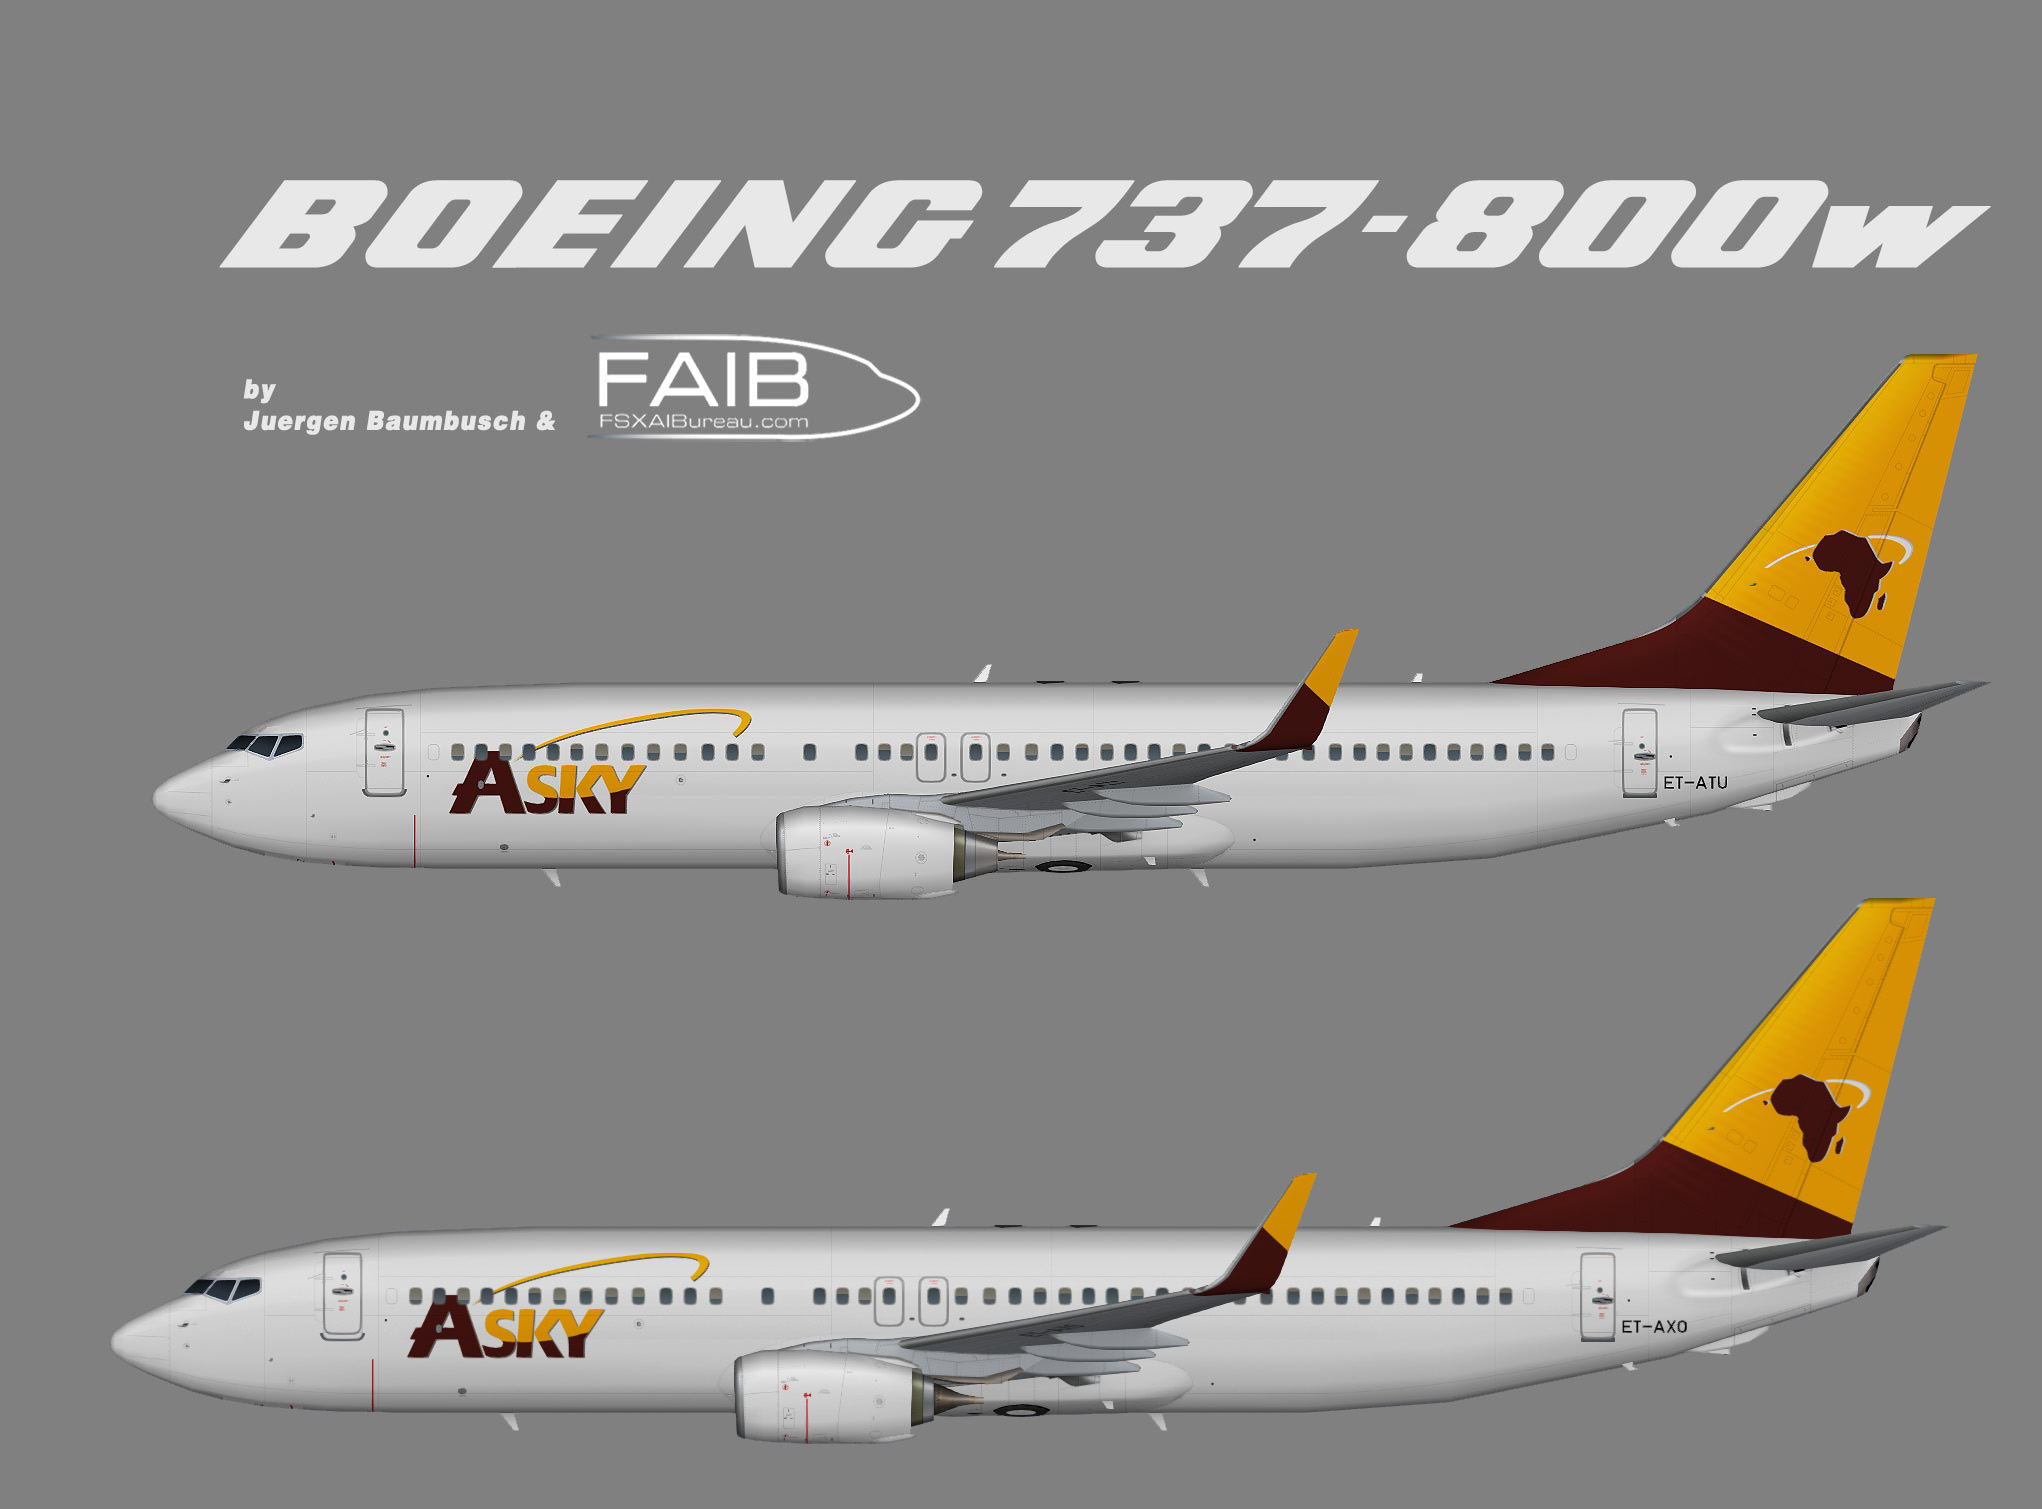 Asky Airlines Boeing 737-800w